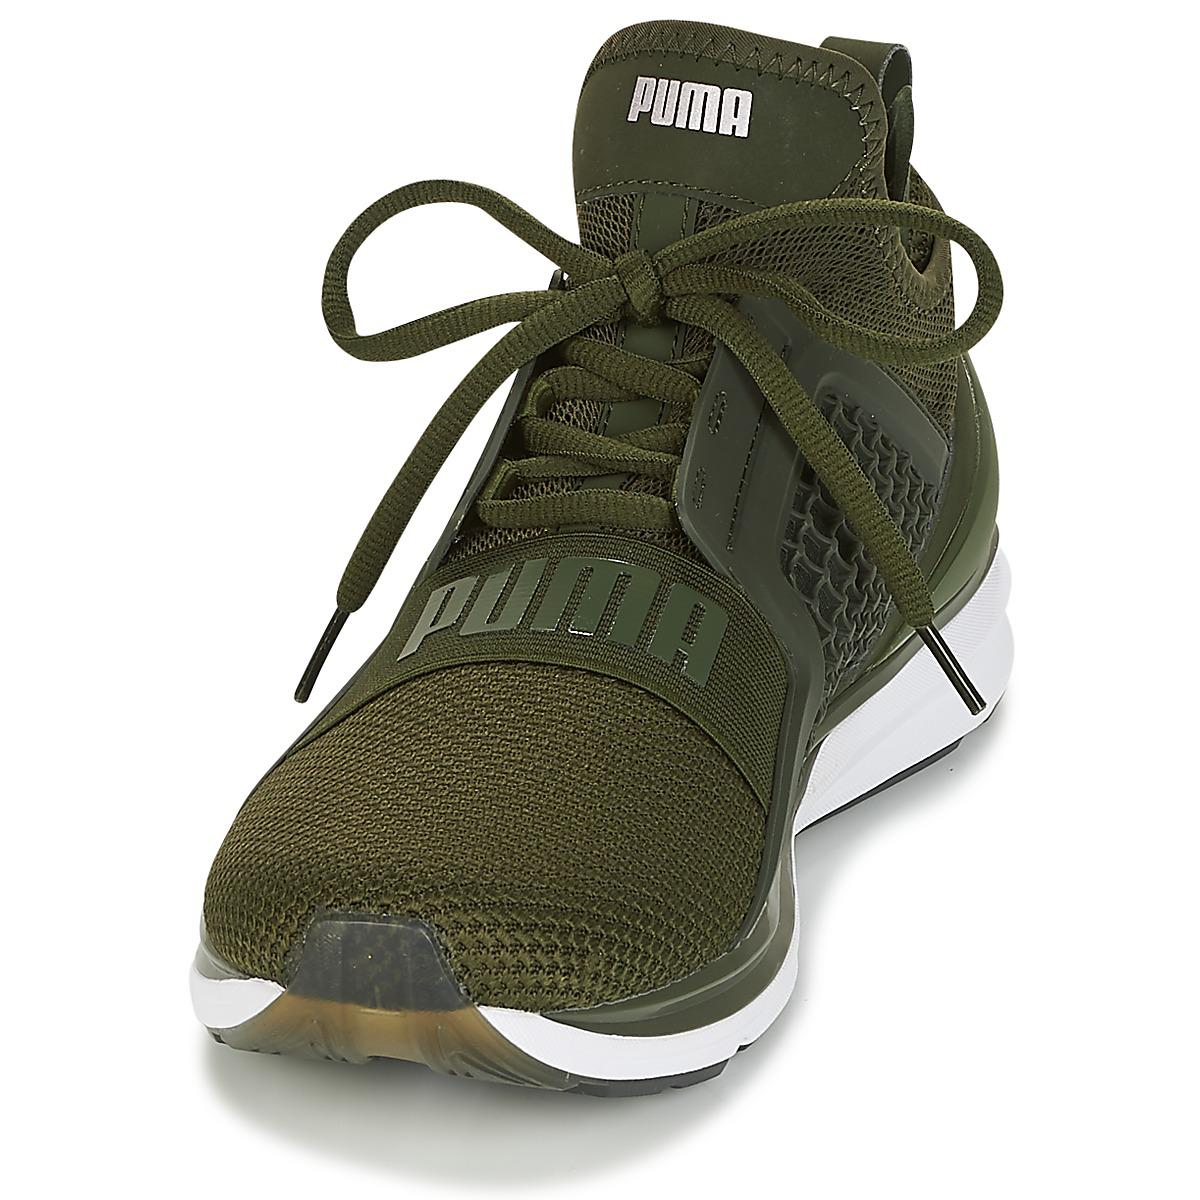 PUMA - Ignite Limitless Weave Men s Running Trainers In Green for Men -  Lyst. View fullscreen 9b09fd82c